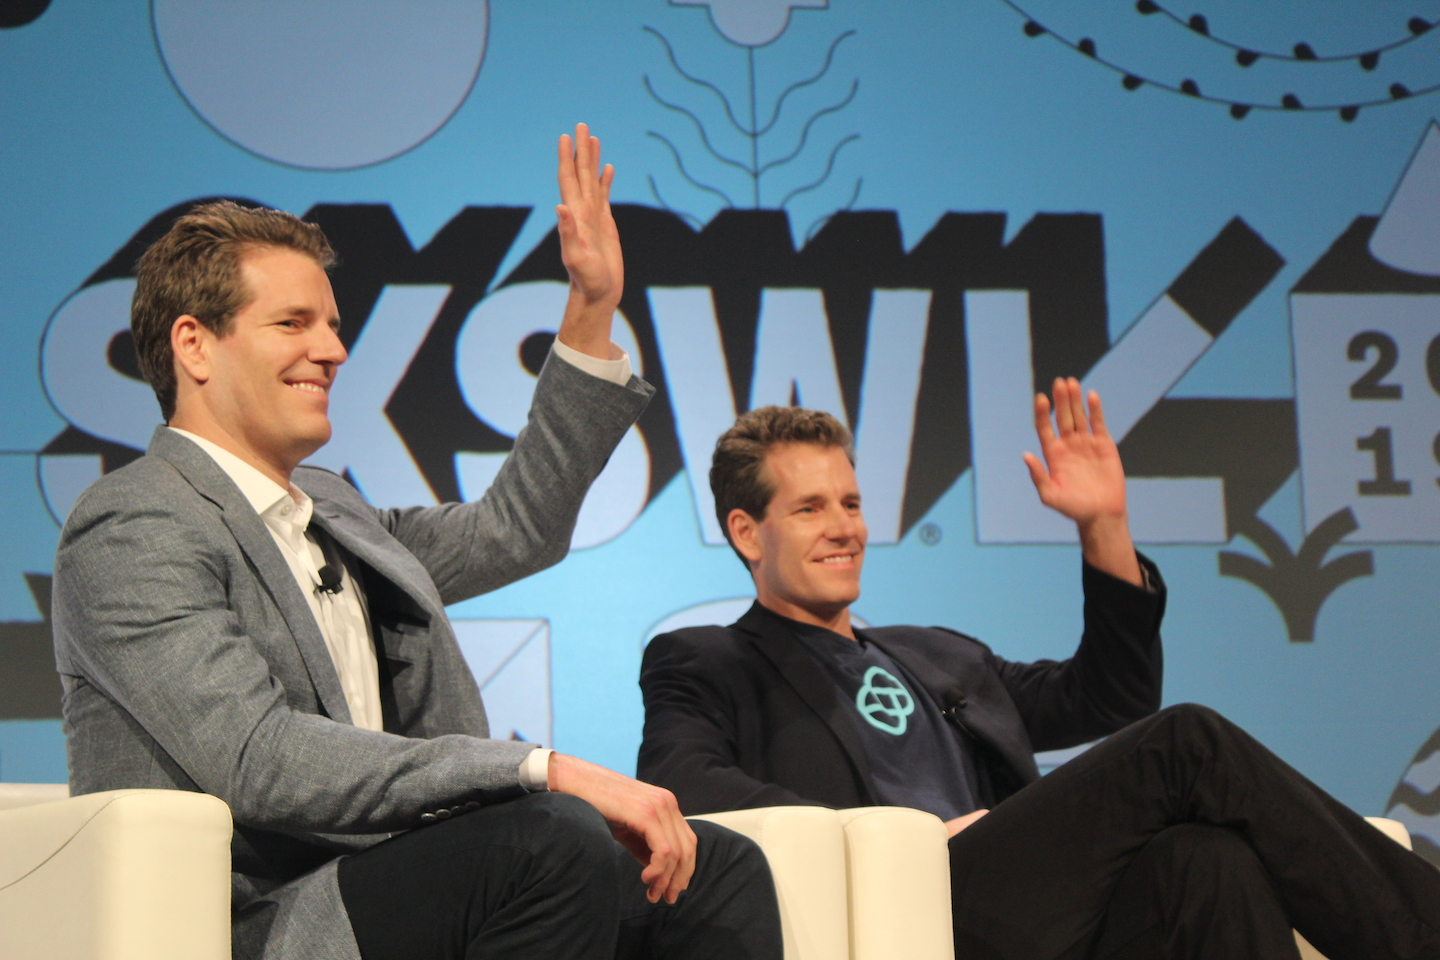 Cameron and Tyler Winklevoss at their Featured Session about the cryptocurrency revolution - Photo by Noah Ainsworth